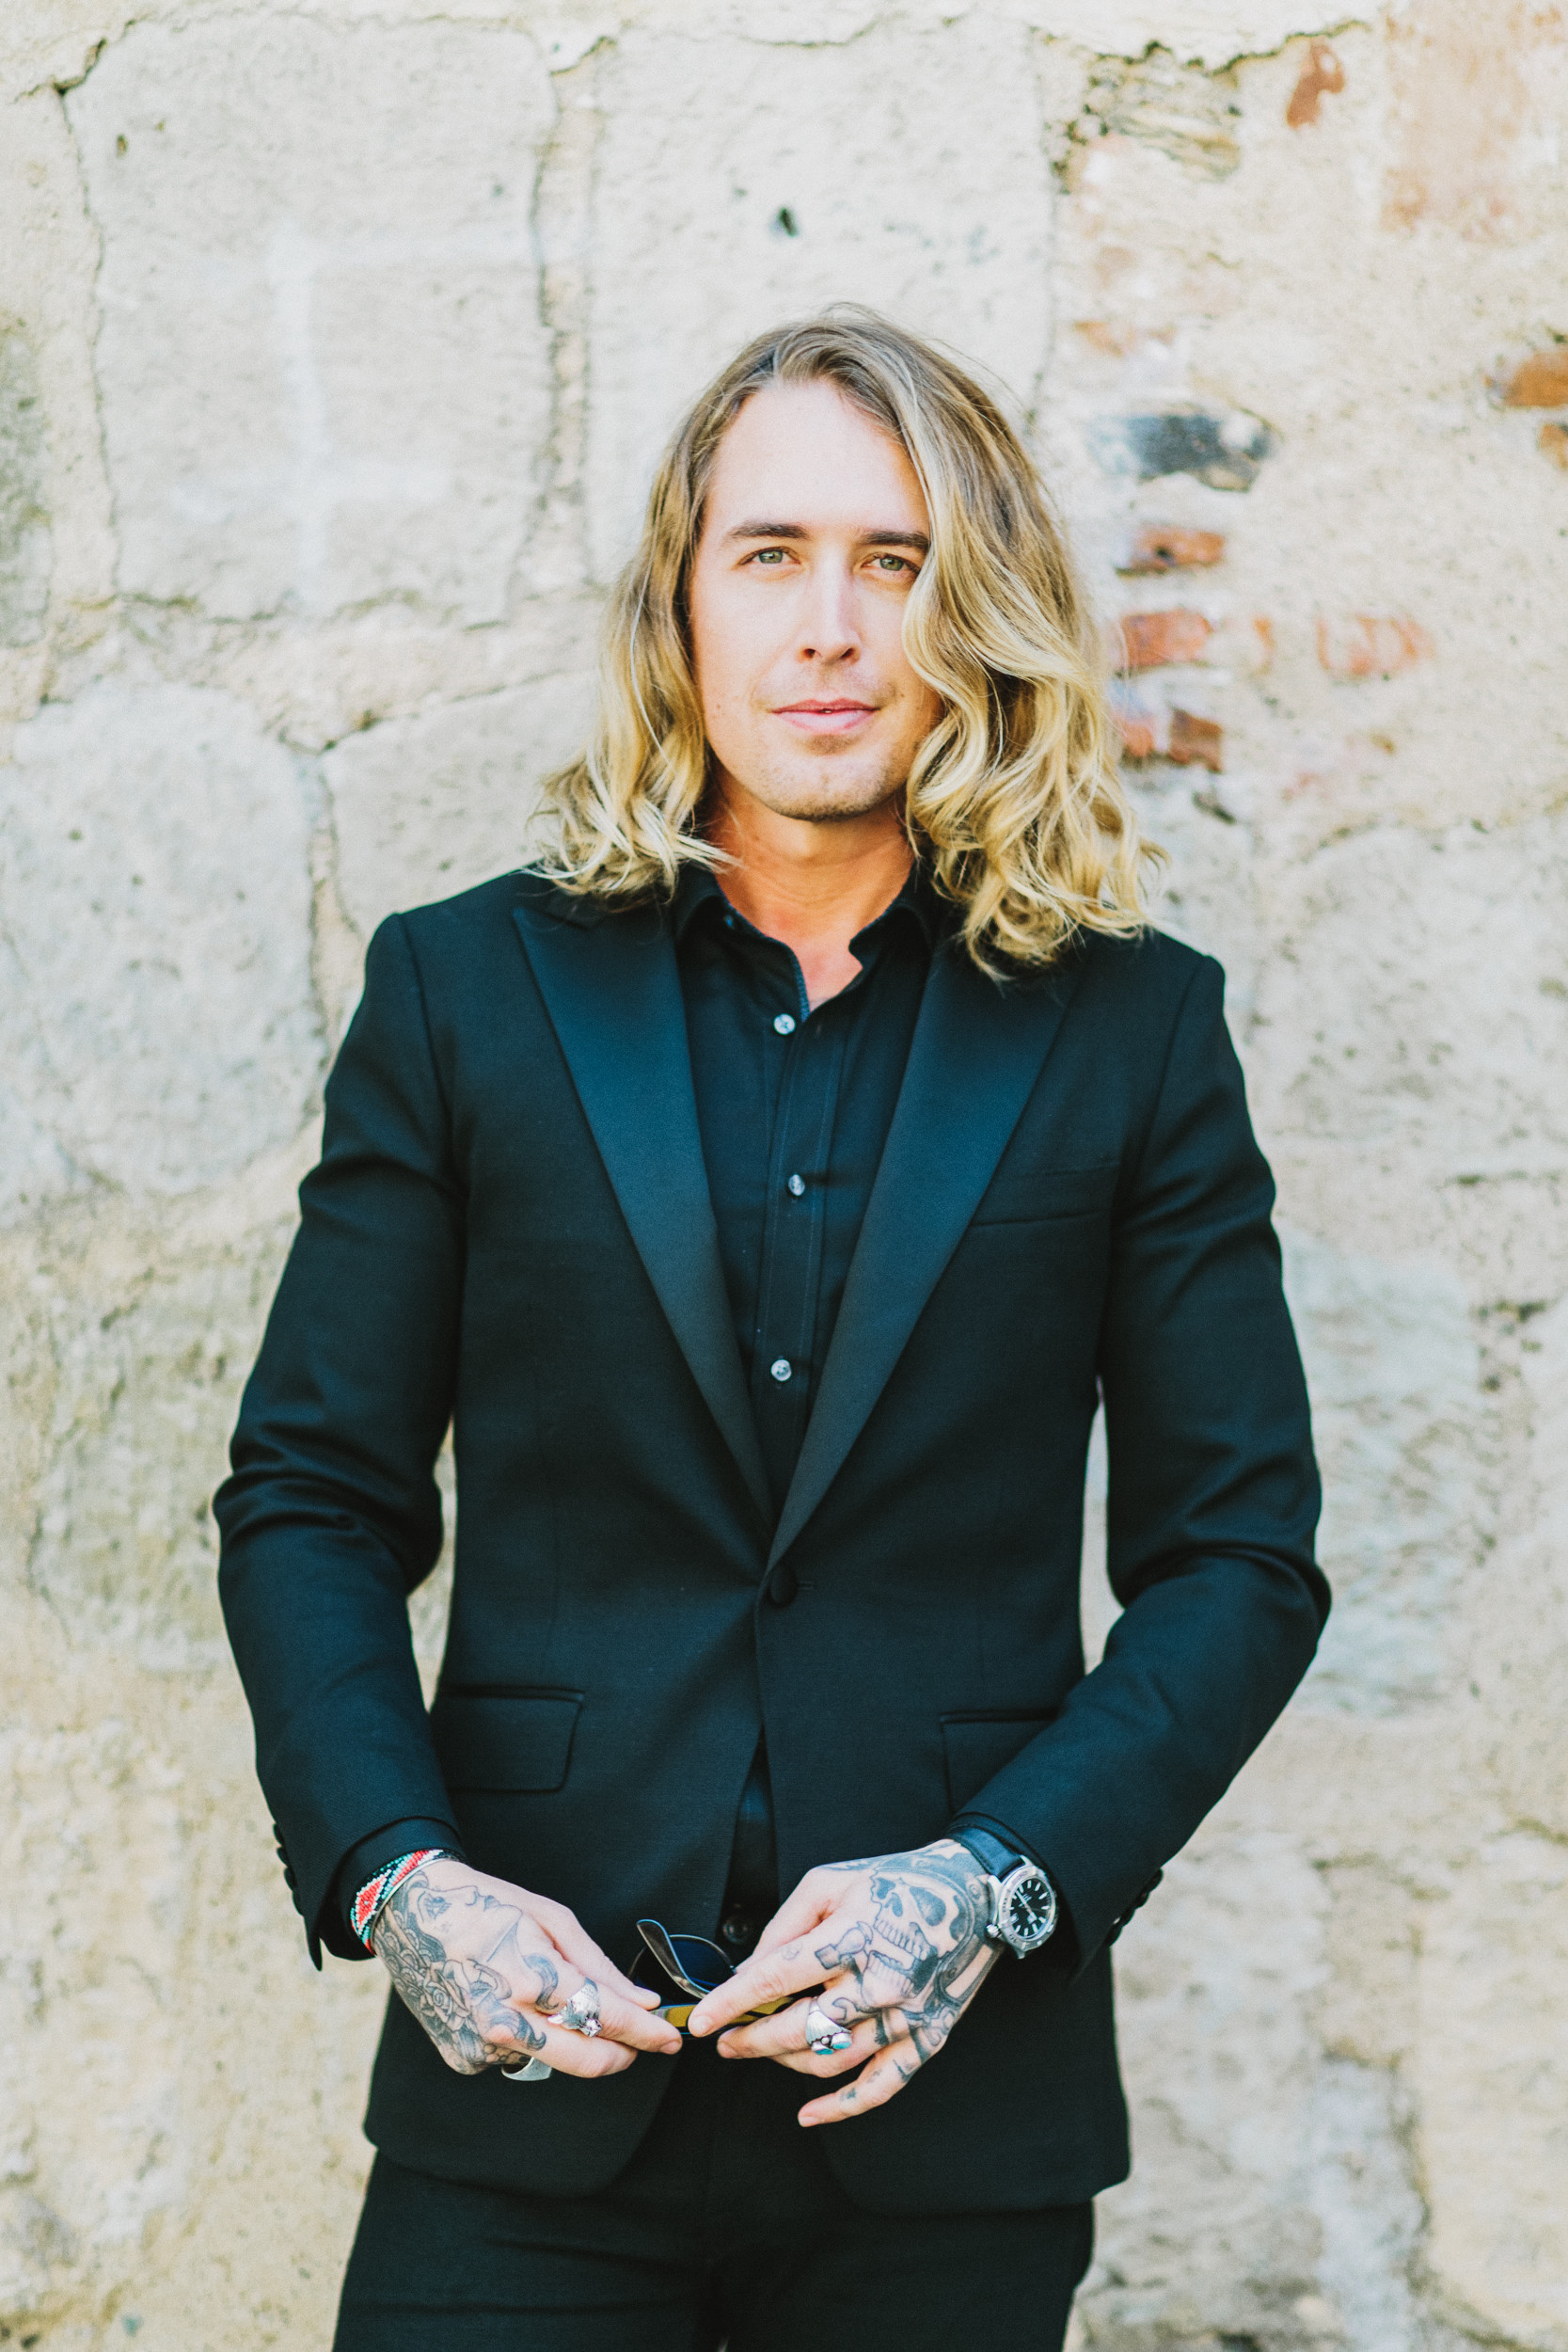 tattooed groom with long blonde hair wearing all black